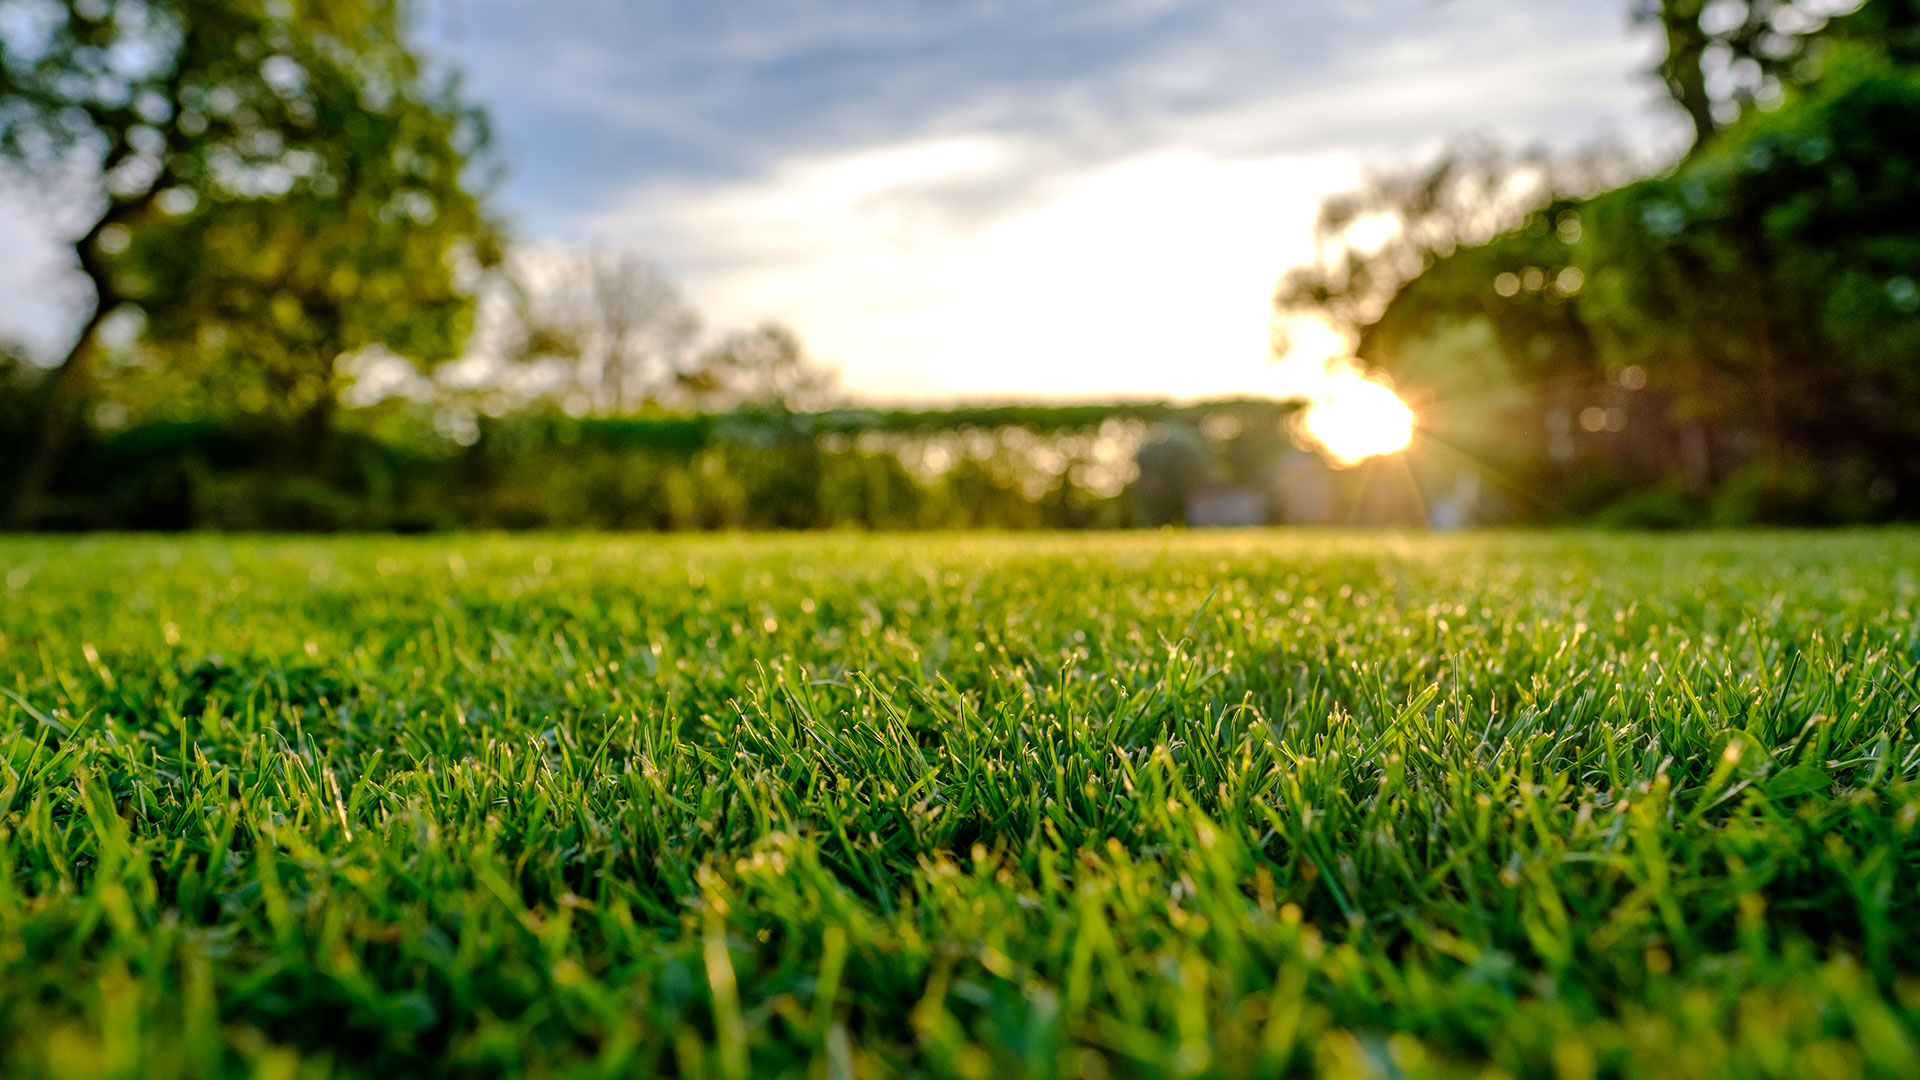 Lawn mowed, fertilized and maintained by J&C Lawn Care in Happy Valley, OR